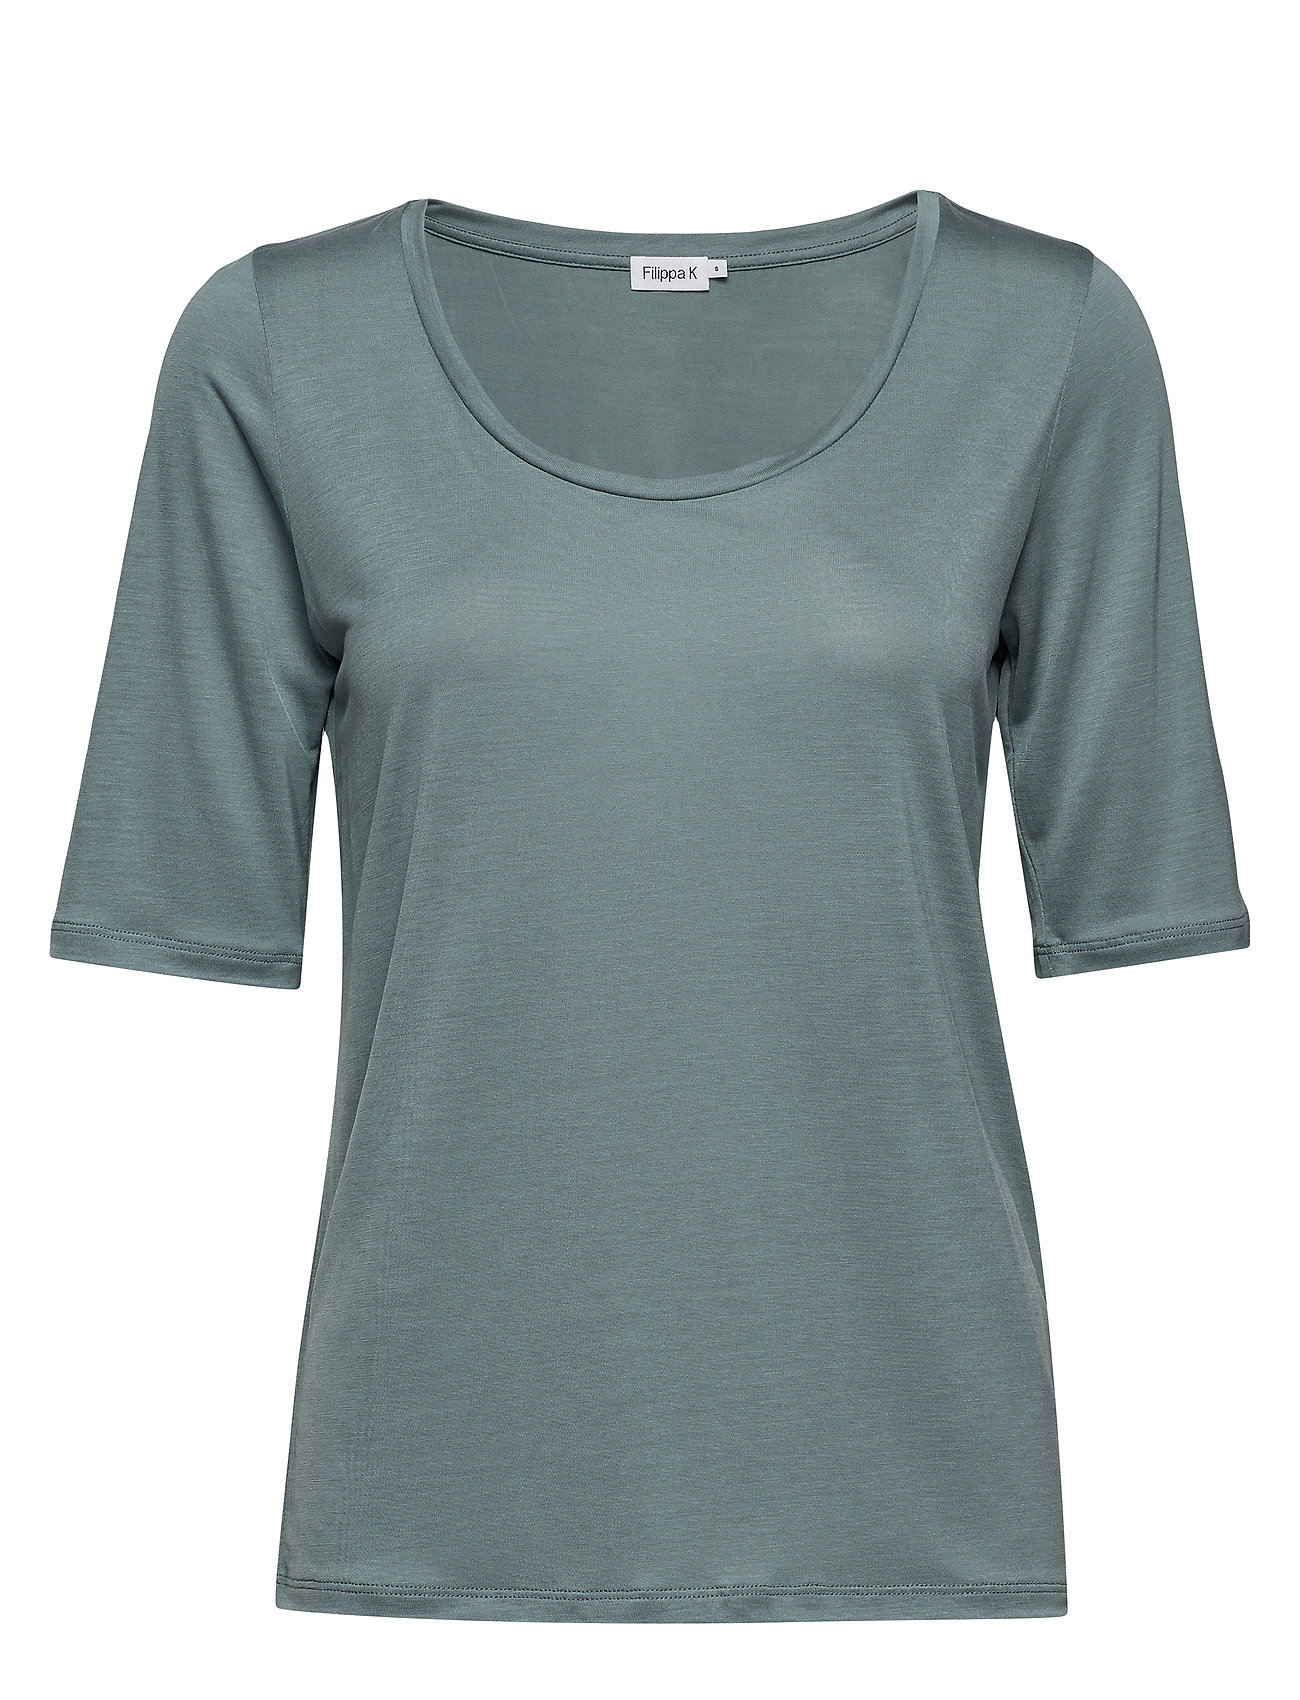 Filippa K Tencel Scoop-neck Tee - RIVER